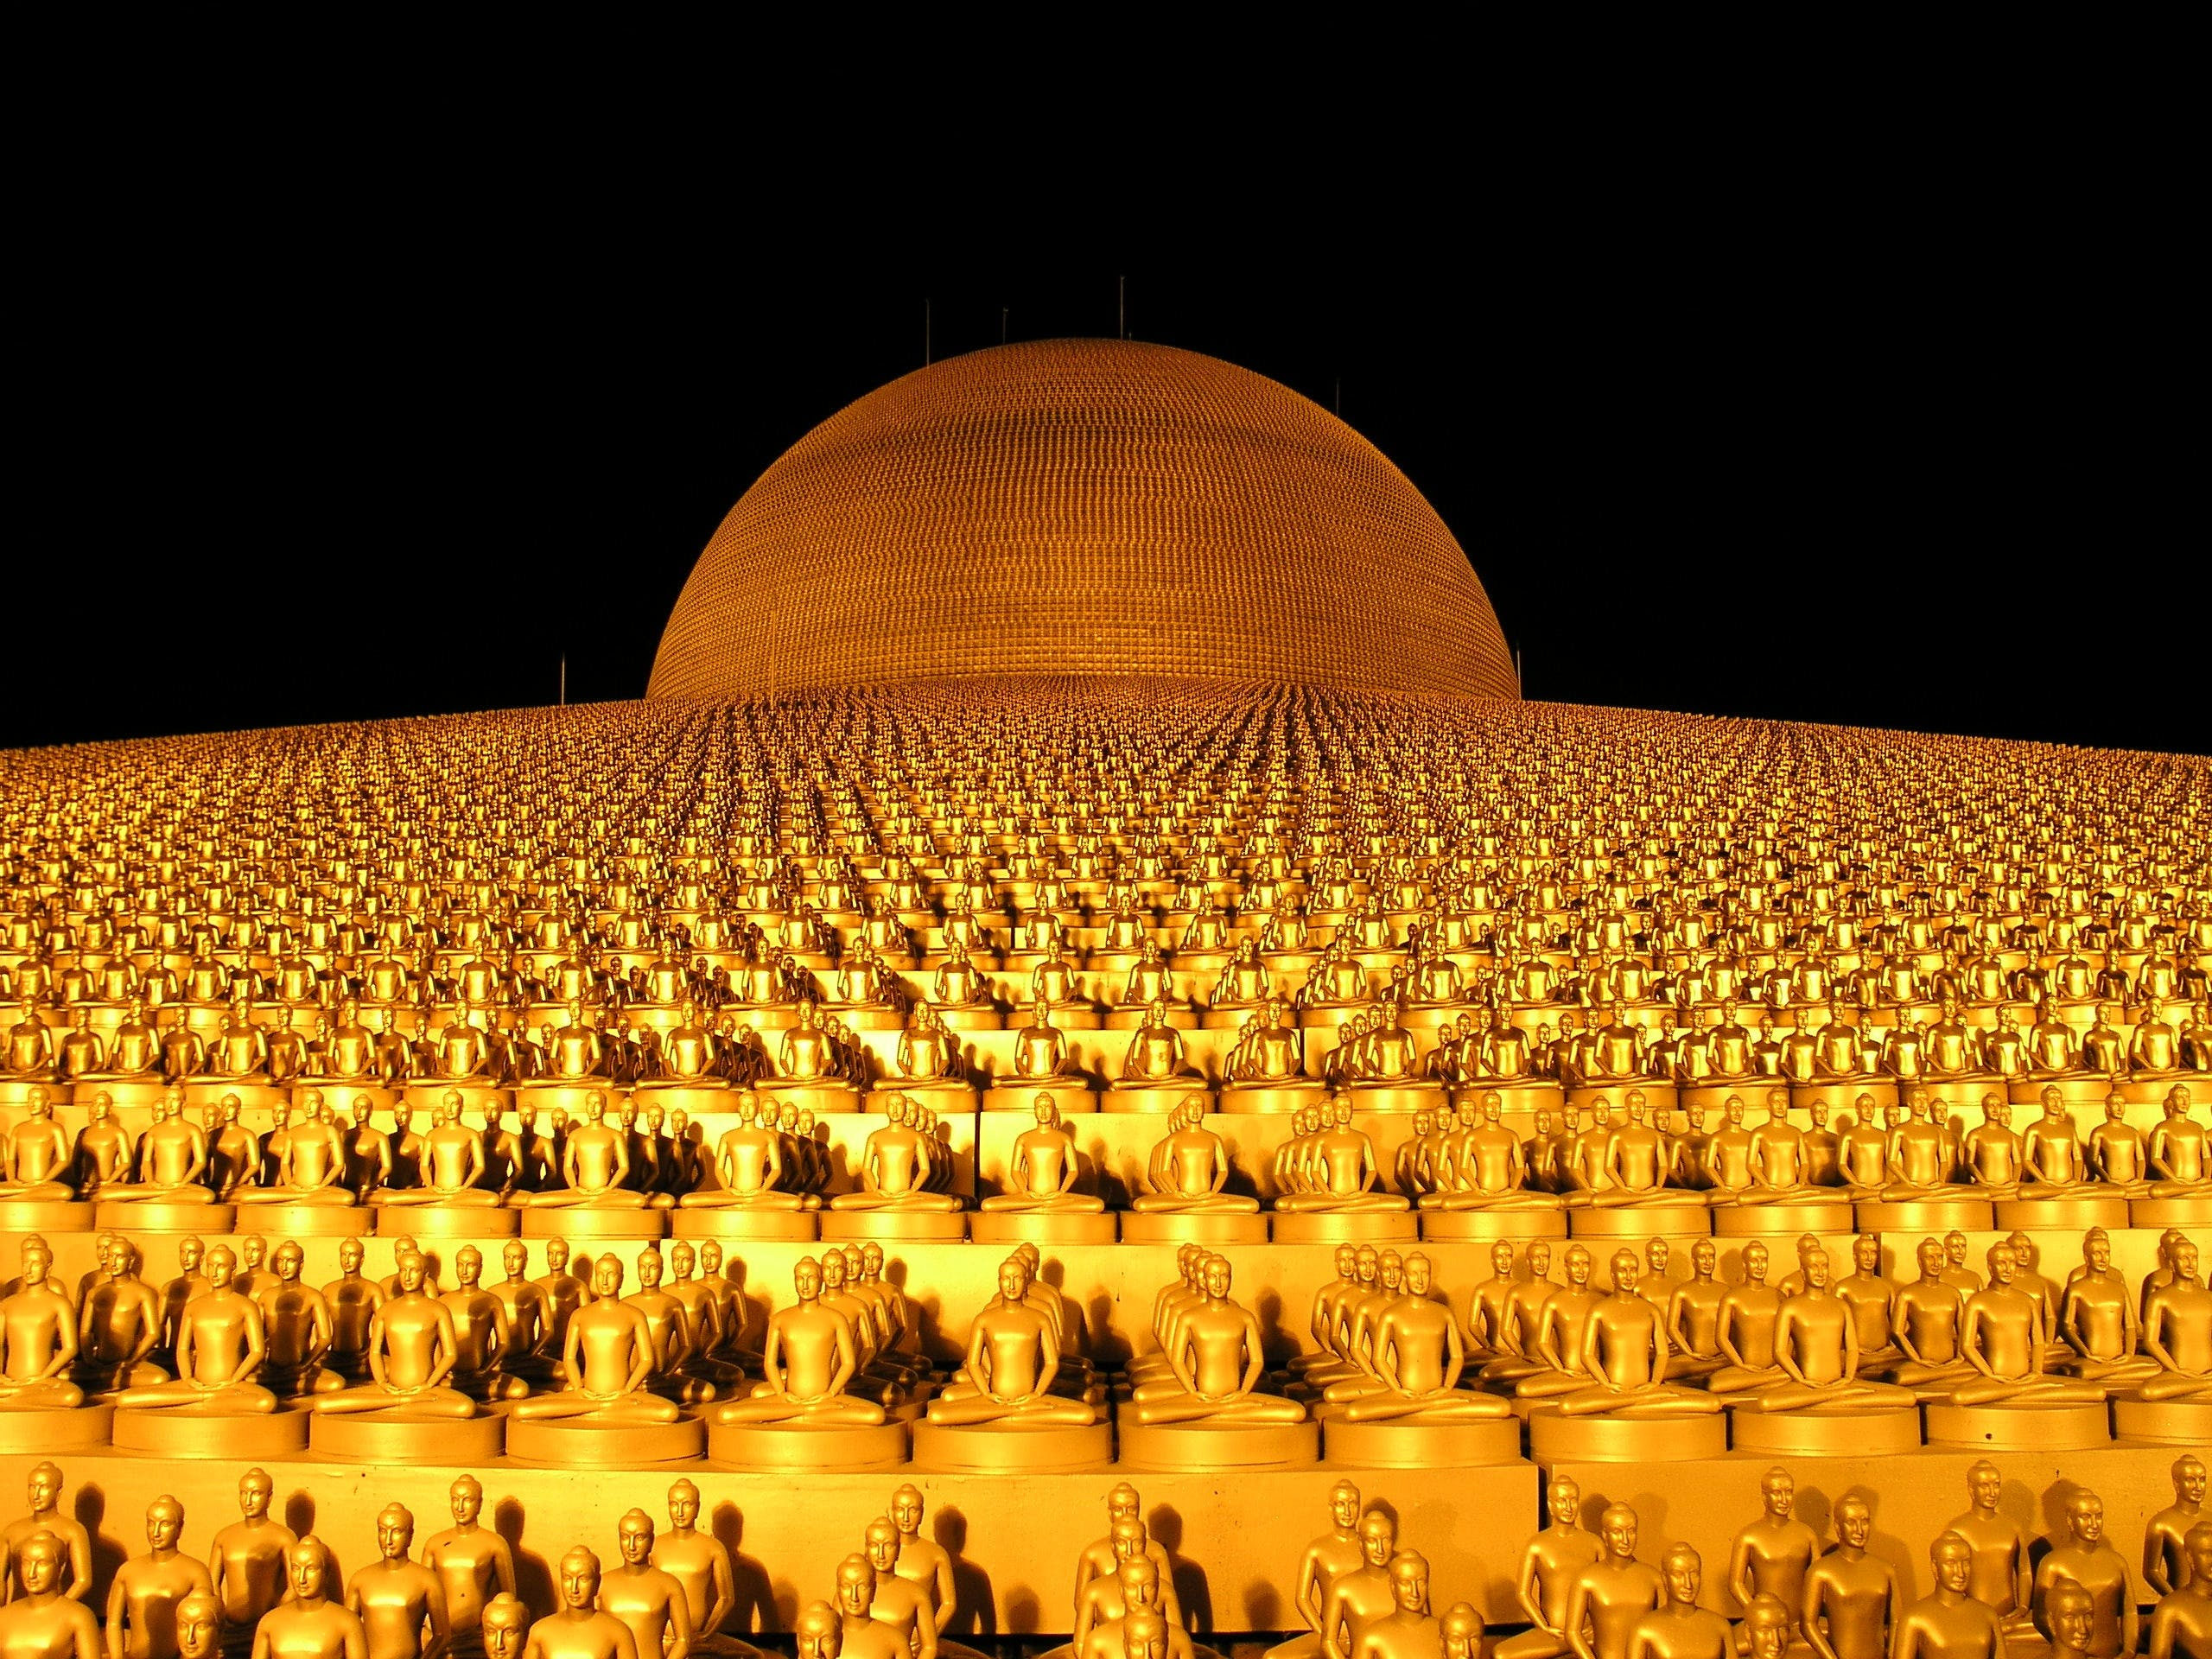 Gold-colored Buddhas Dome Building